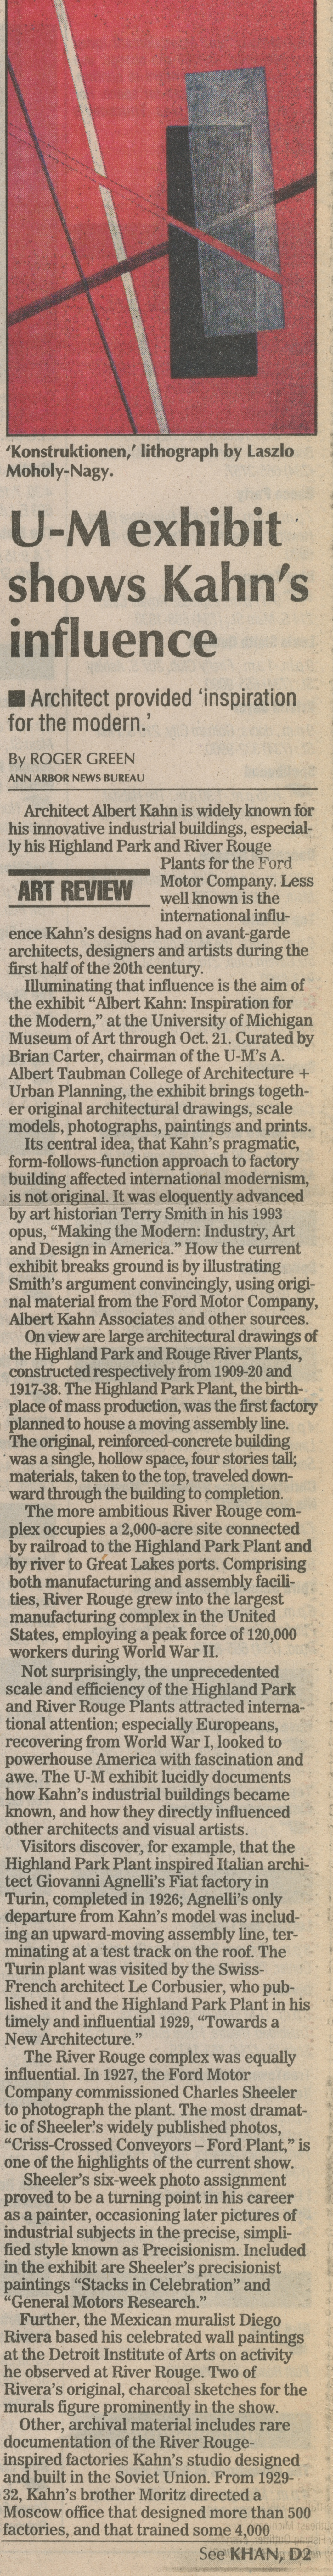 "U-M Exhibit Show Kahn's Influence: Architect Provided ""Inspiration For The Modern"" image"